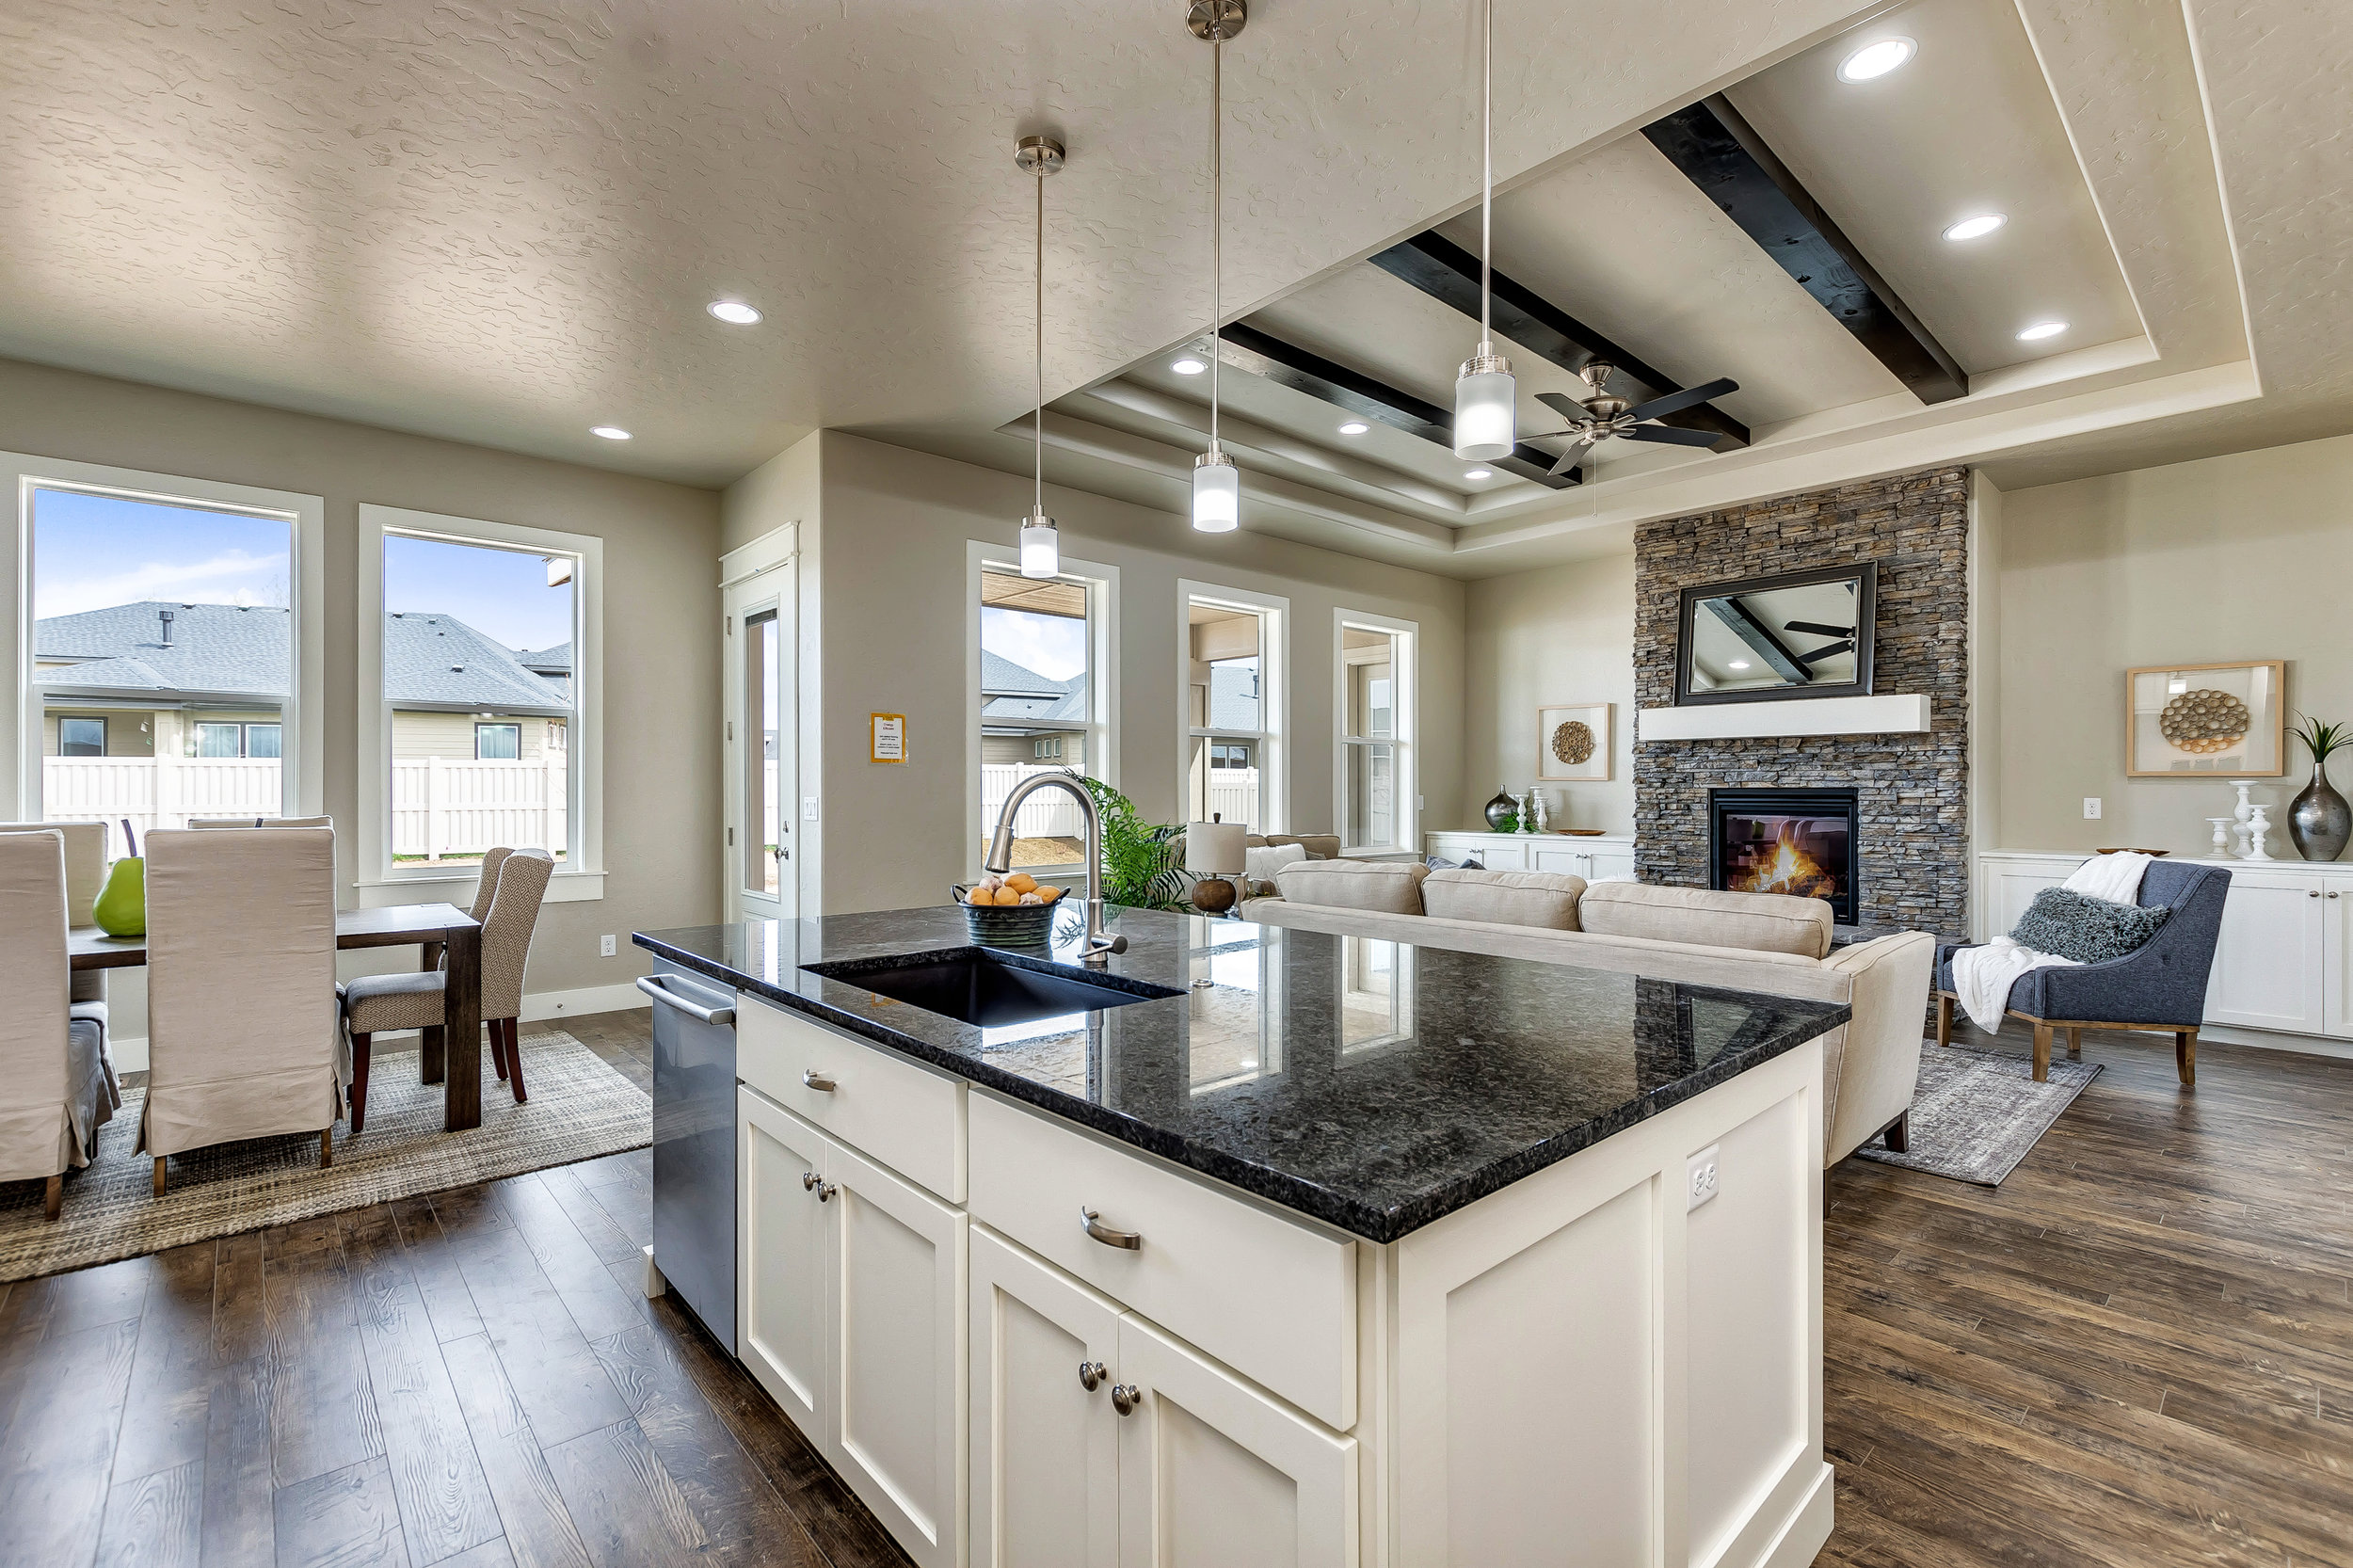 08-Kitchen and Living area.jpg